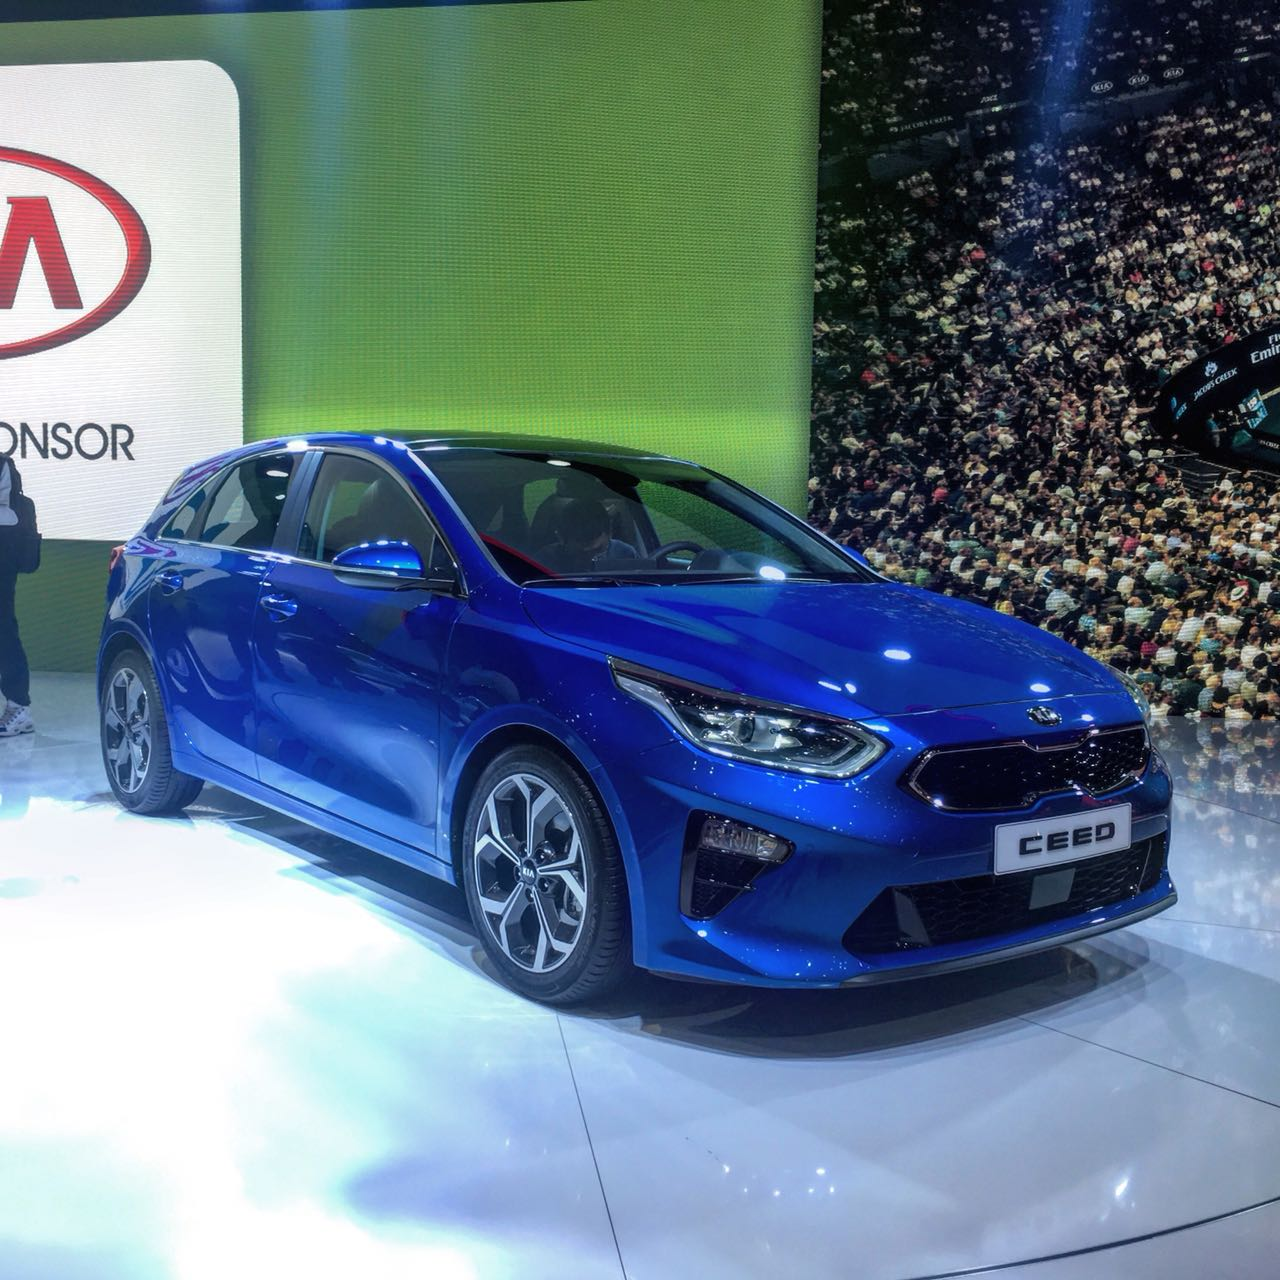 Geneva Motor Show 2018 Highlights: Car Launches; Images